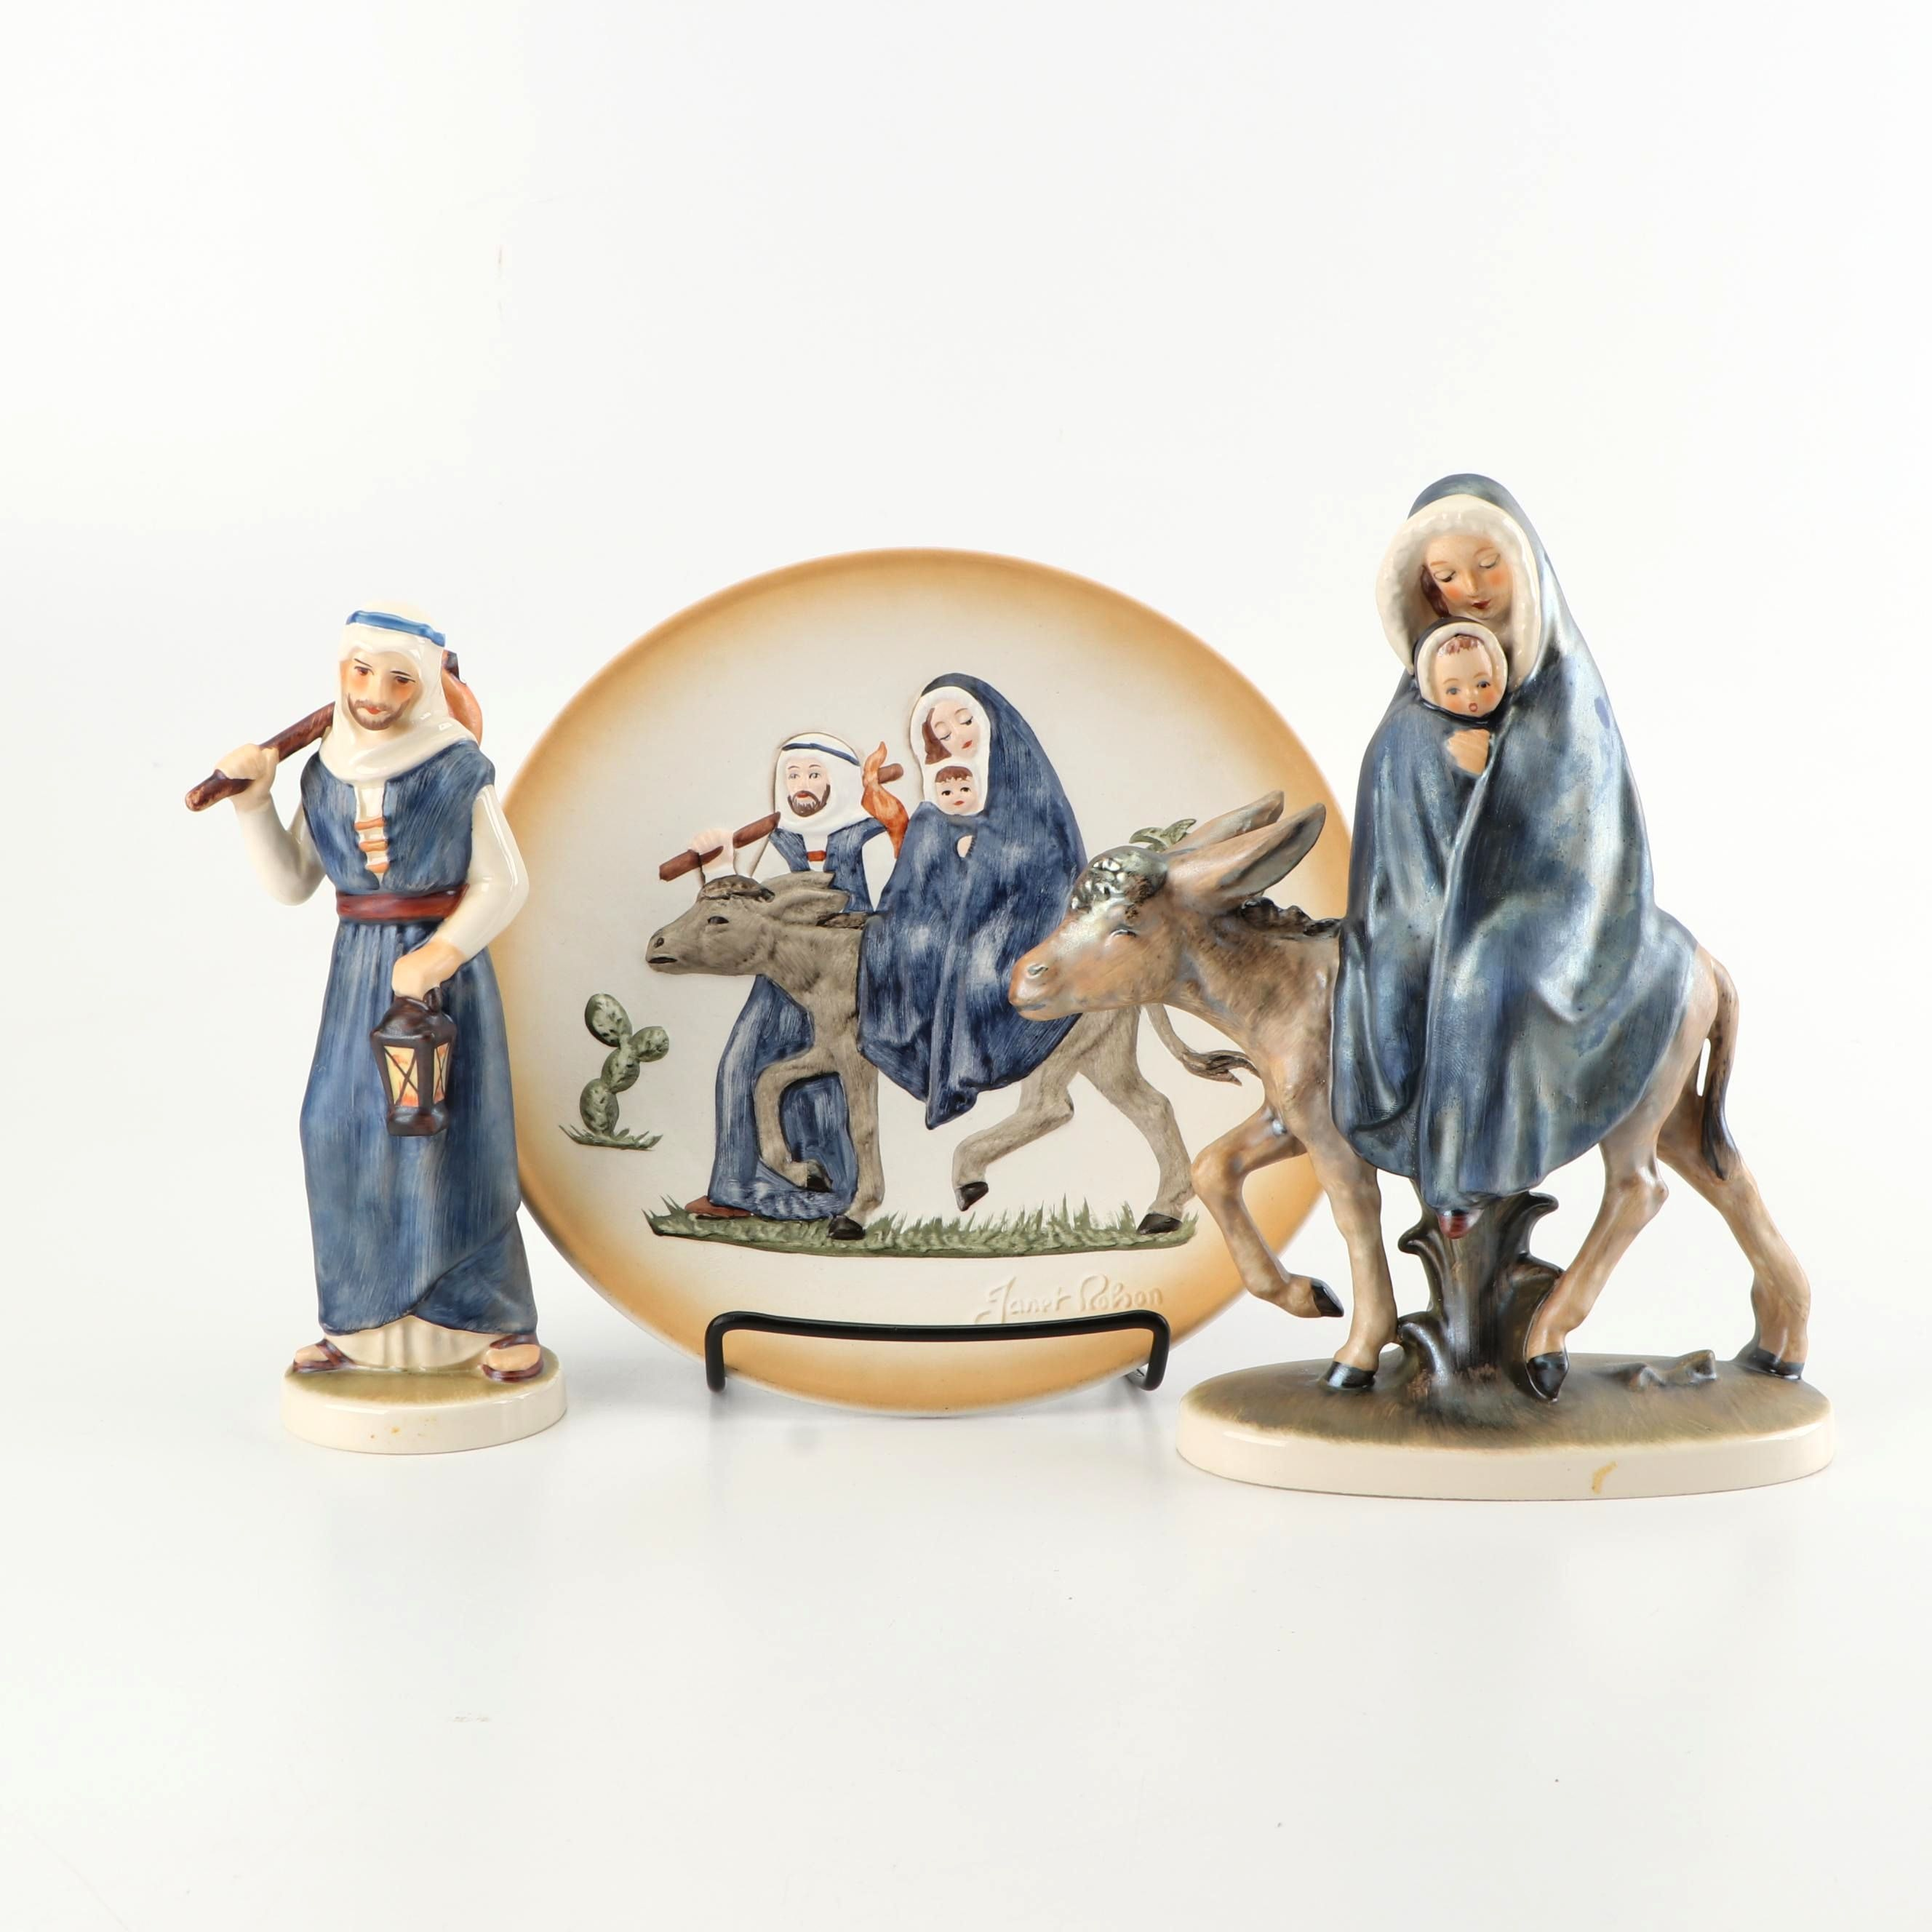 Commemorative Goebel Joseph Mary and Jesus Plate and Figurines